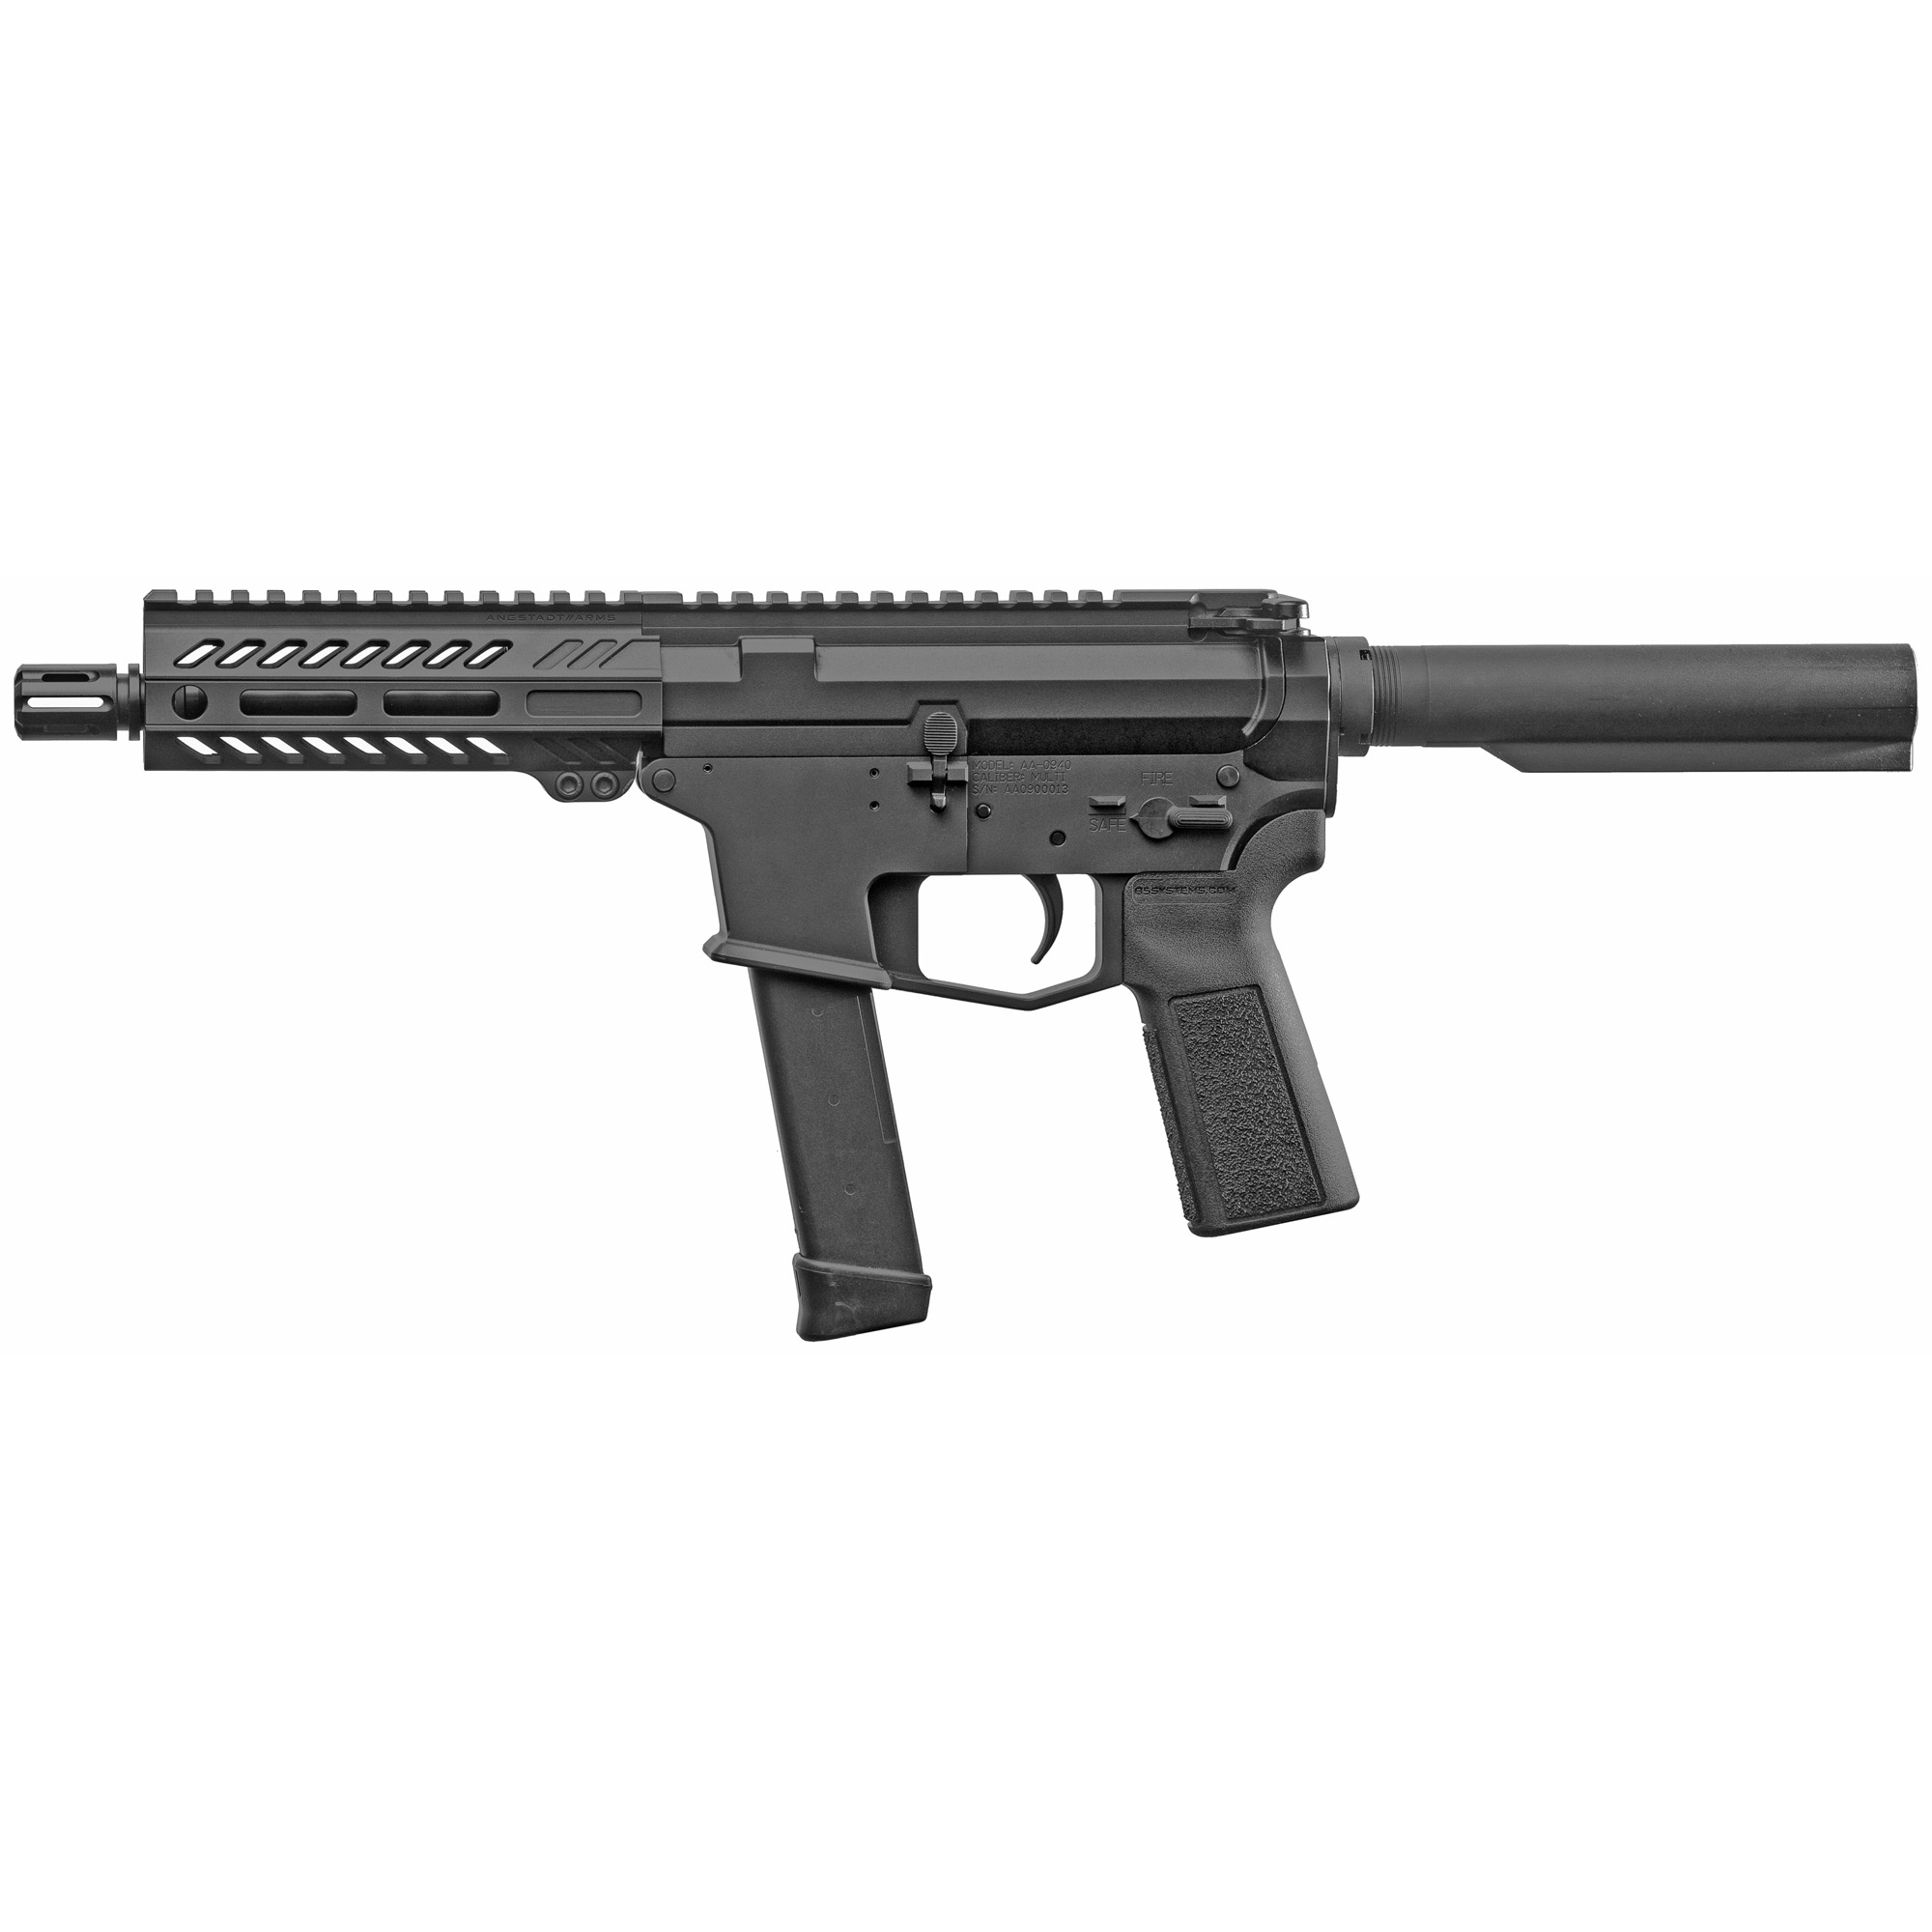 """The UDP-9 Pistol is a compact AR-9 style firearm chambered in 9mm and fed with GLOCK(R) magazines. It features last round bolt hold open"""" an integrated trigger guard"""" flared magwell and a 5.5"""" free float M-LOK hand guard with a modern"""" ergonomic"""" 7 side design. Machined from 7075-T6 aluminum the UDP-9 comes with a lifetime warranty. Includes one GLOCK(R) OEM 9mm magazine."""